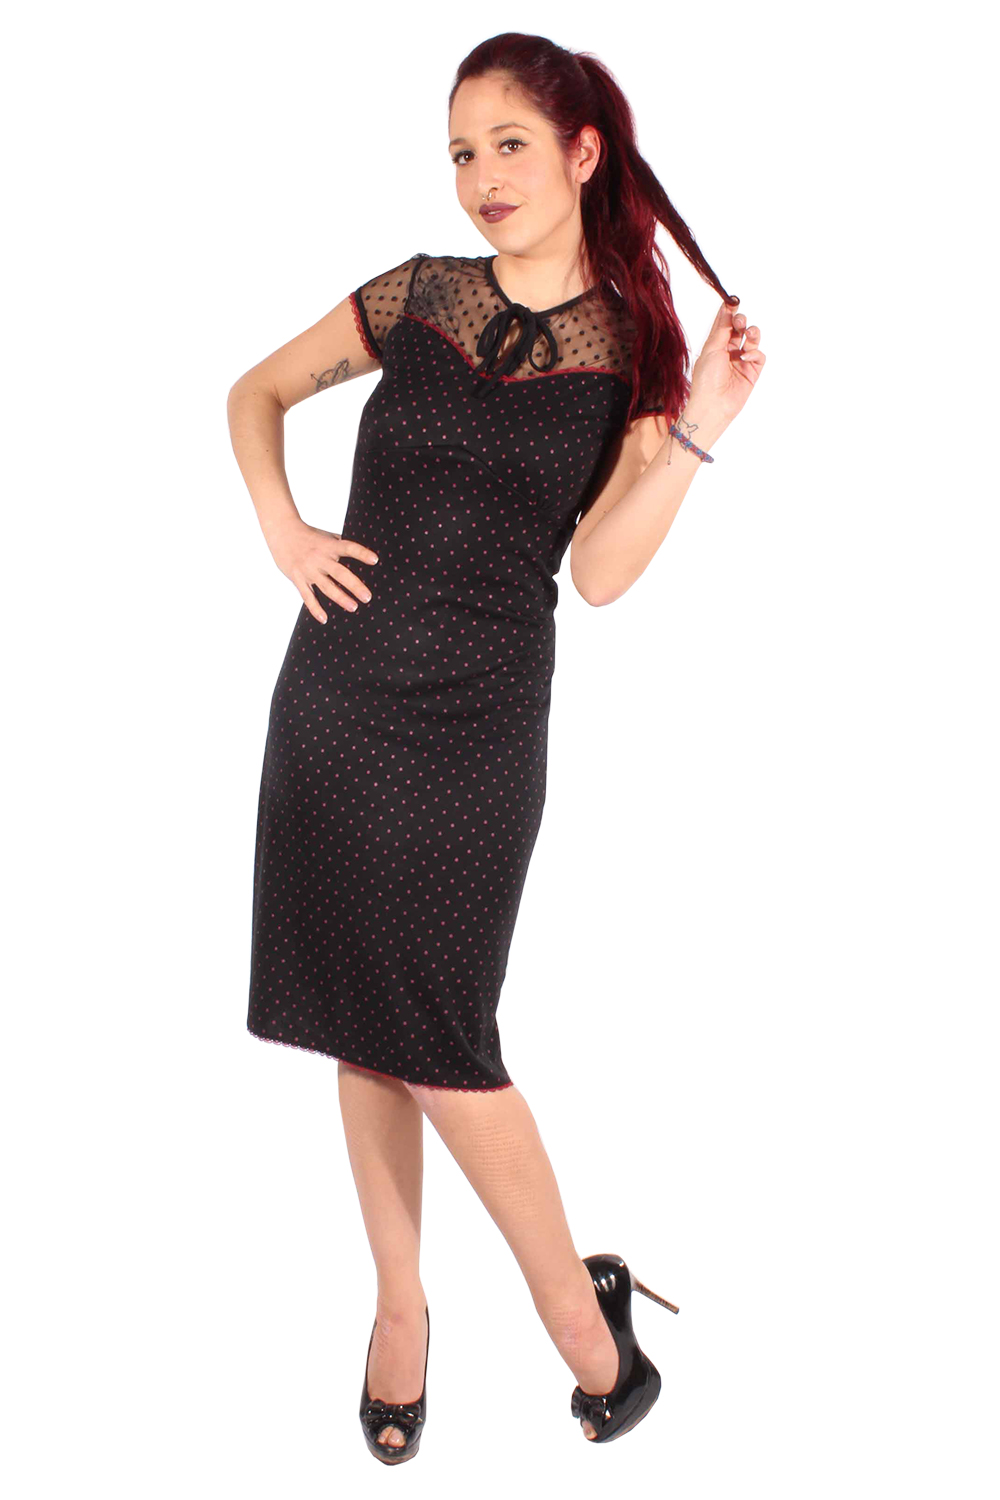 POLKA DOTS Netz rockabilly A-Linie Stretch KLEID Strandkleid Shirtkleid